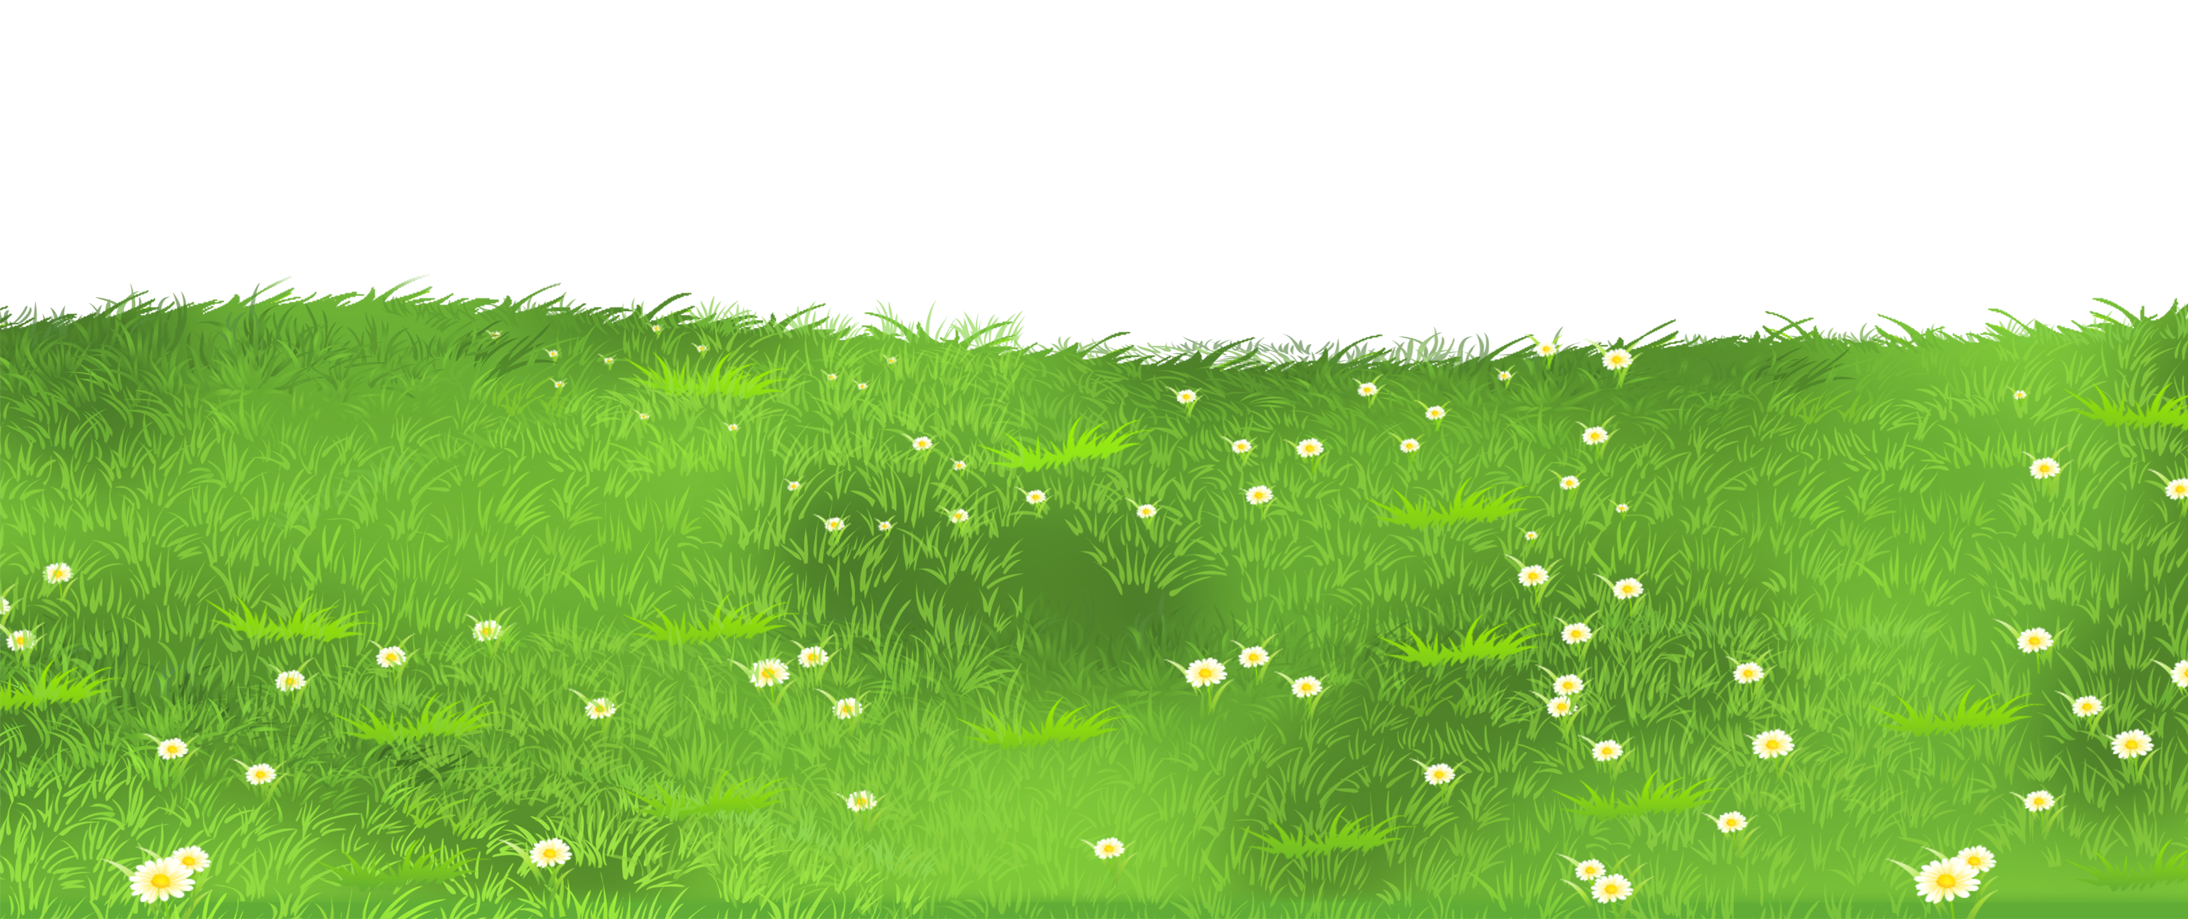 Green grass image diversos. Environment clipart scenery